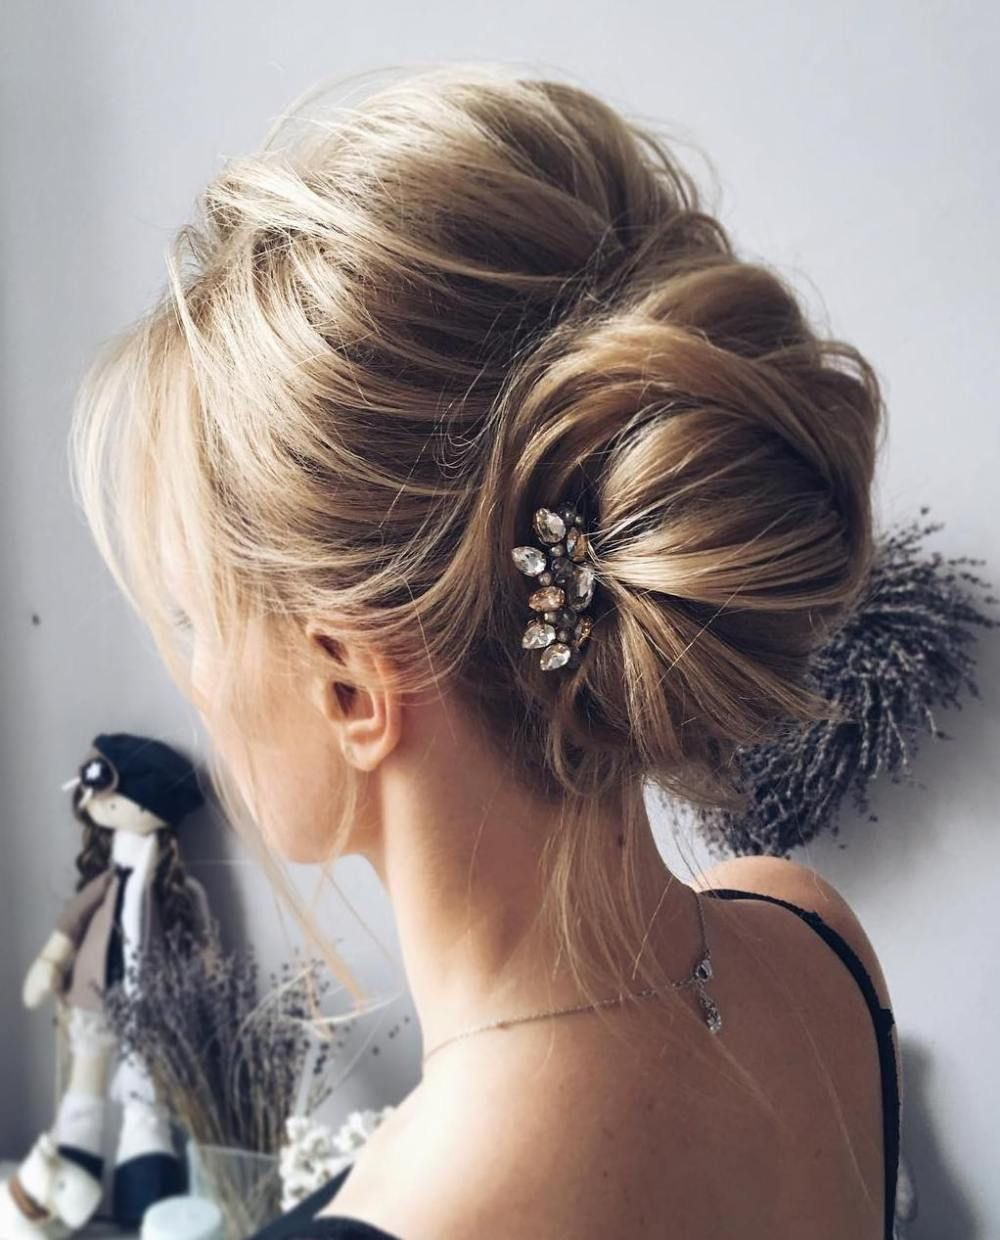 Beautiful Wedding Hairstyle For Long Hair Perfect For Any: 60 Updos For Thin Hair That Score Maximum Style Point